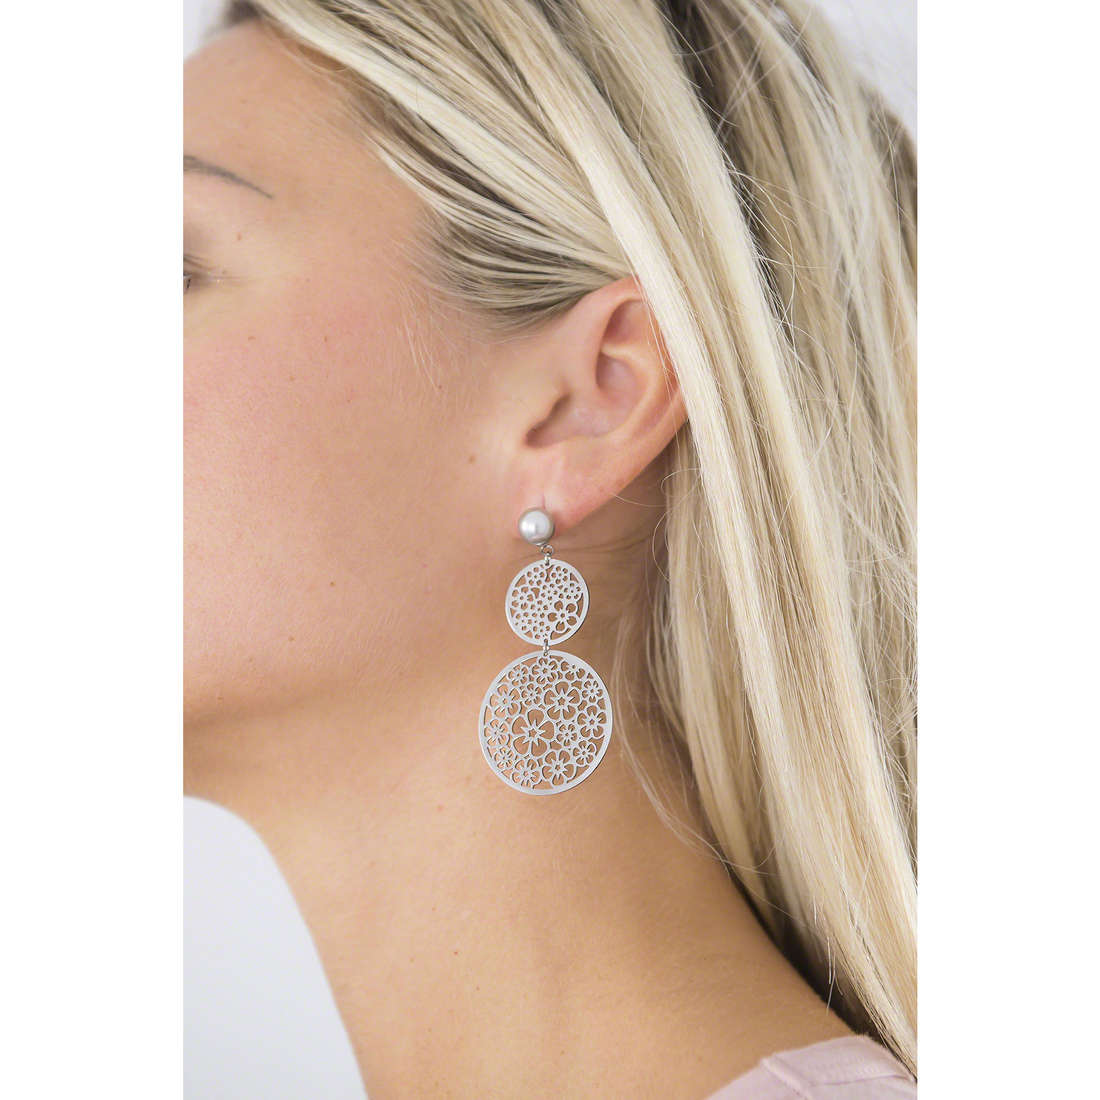 Brosway earrings Mademoiselle woman BIS22 indosso